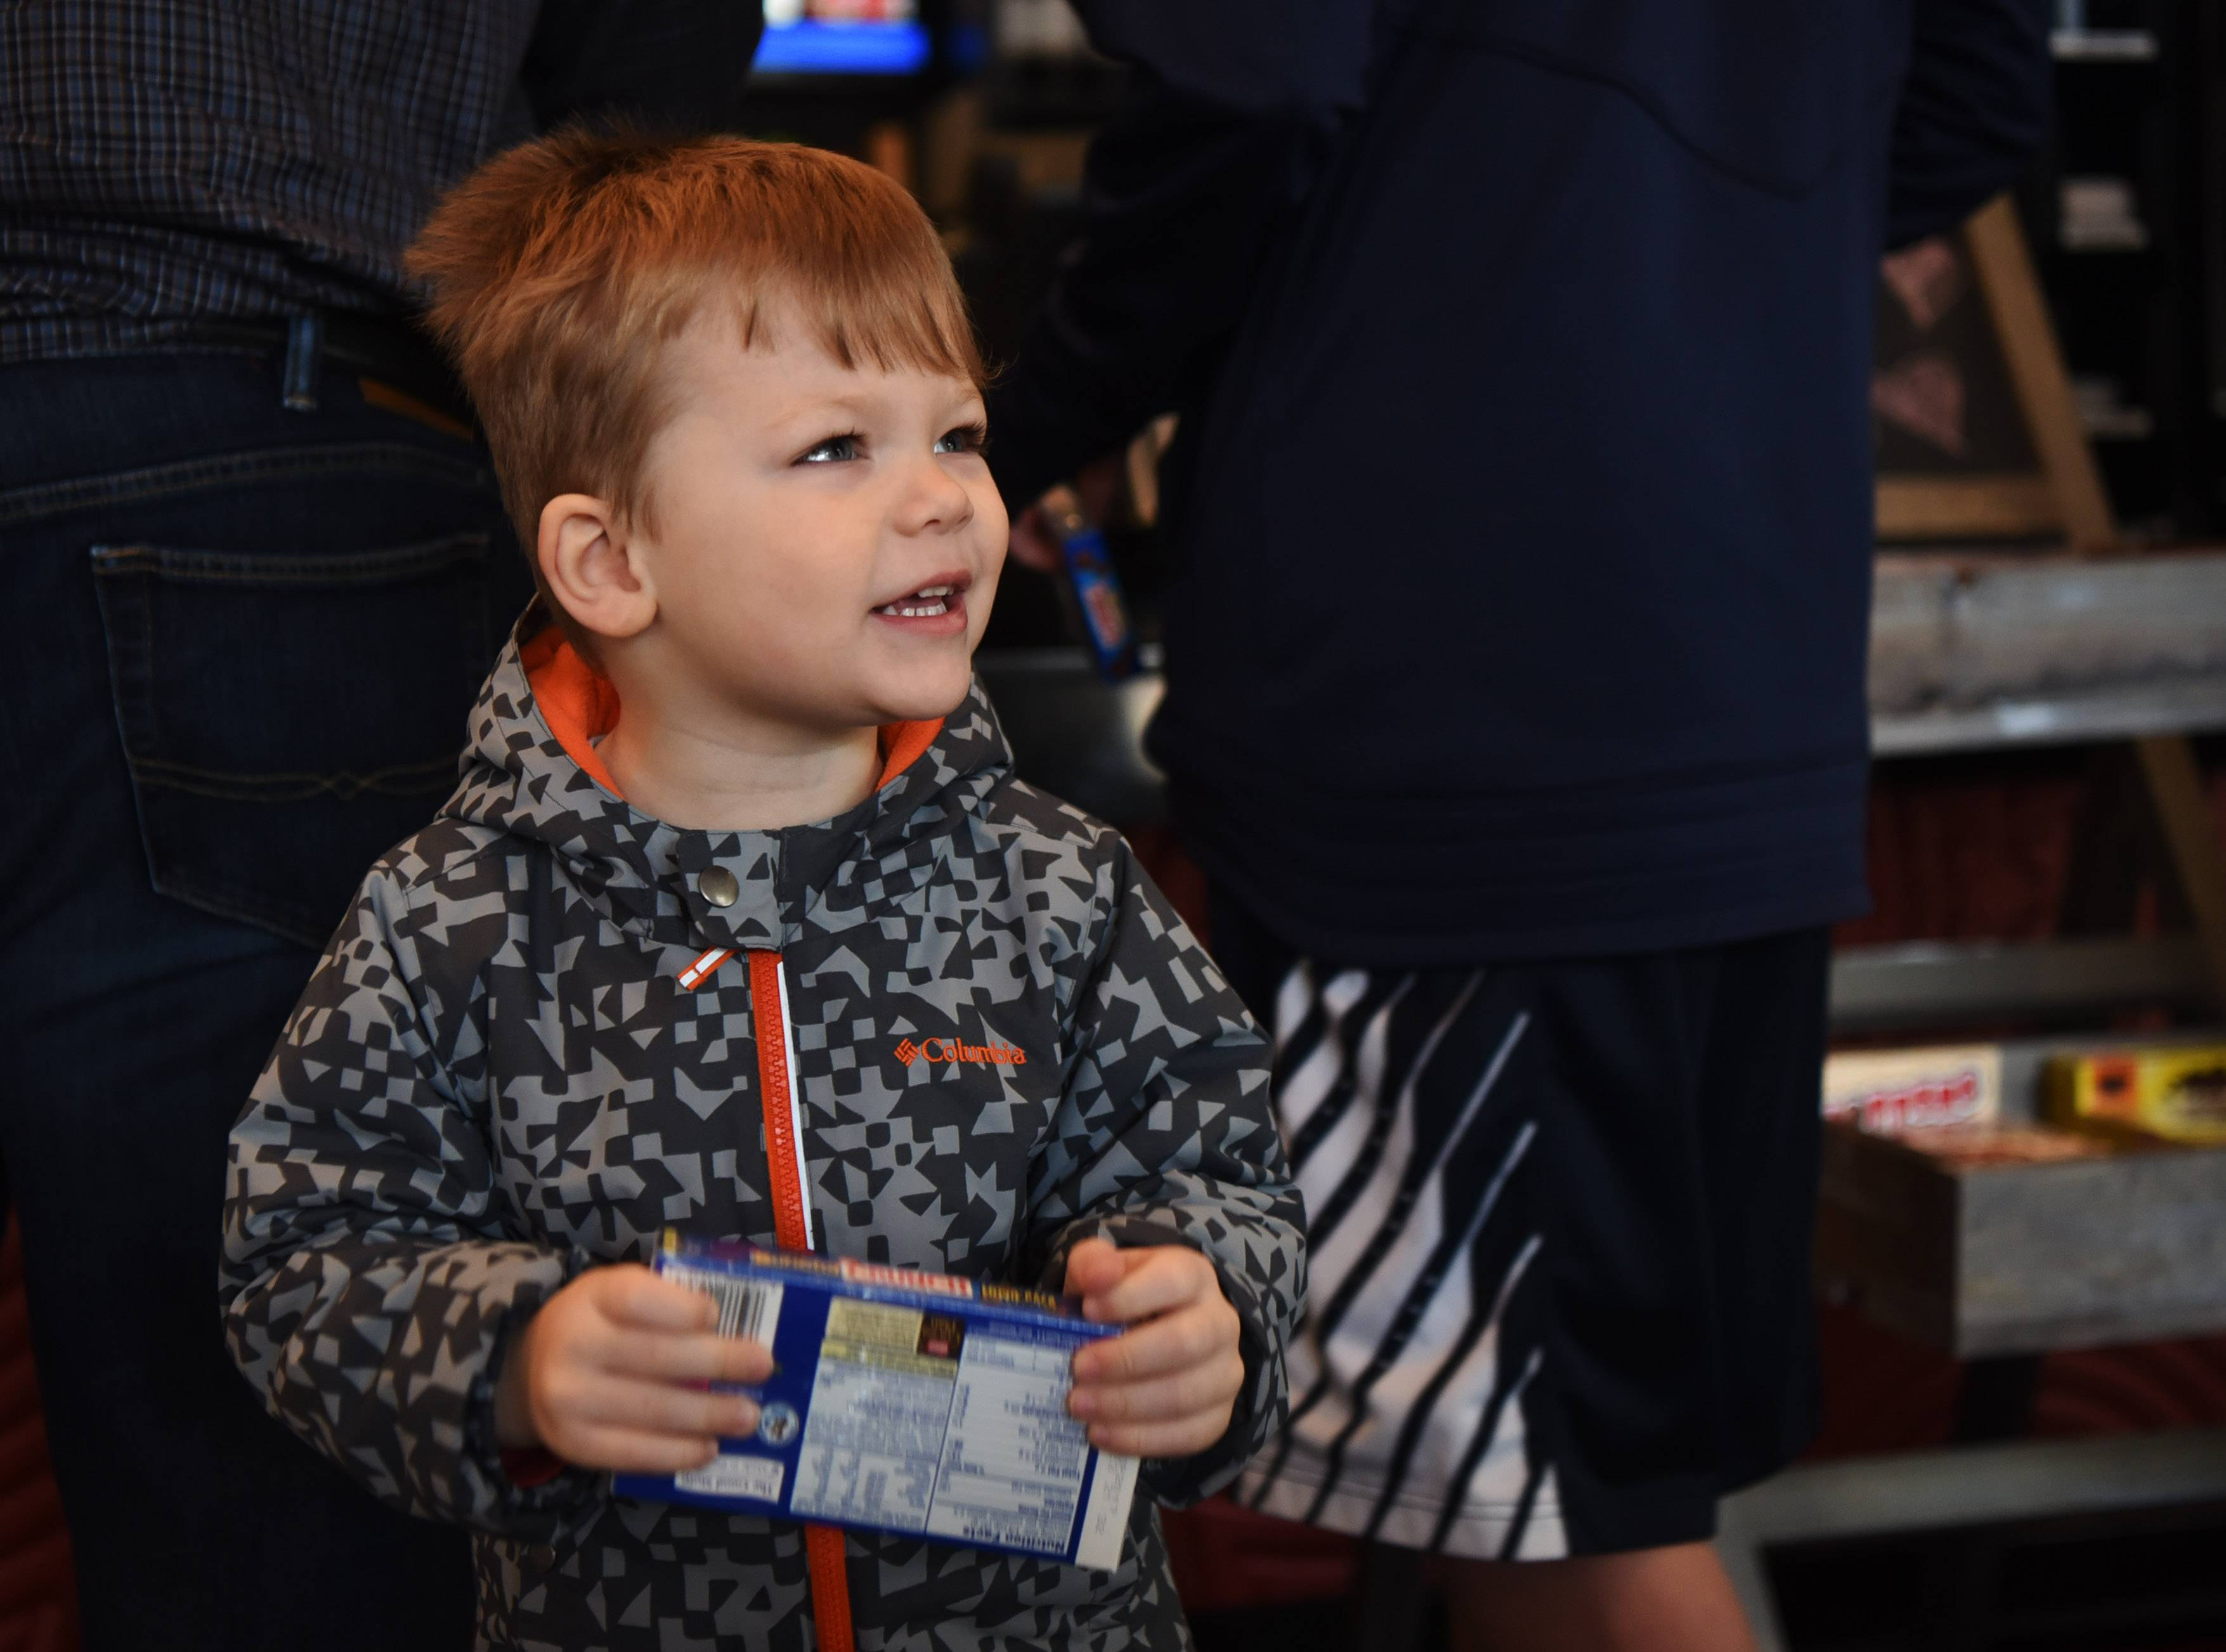 Jacob Lichner, 3, of Arlington Heights, holds his candy selection at the concession stand while attending a sensory-friendly movie with his dad, Kirk, and brother, A.J., at the Paragon Theater in Arlington Heights.